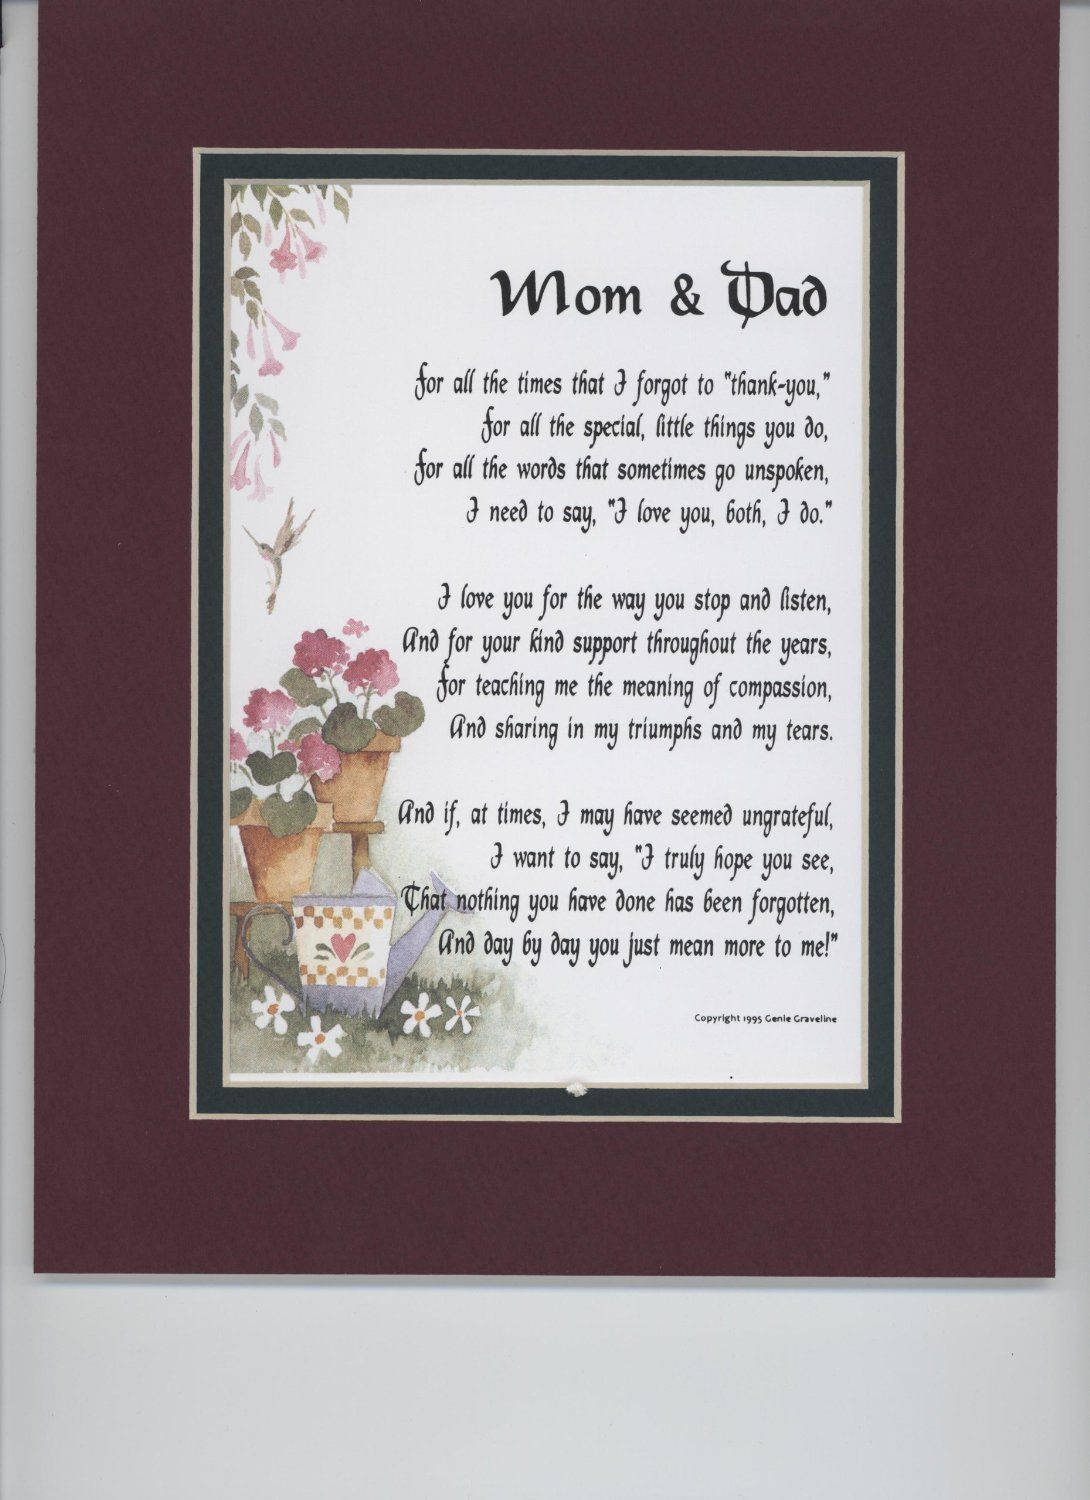 Wedding Gift For Mom And Dad : ... poems Special 30th Wedding Anniversary Gifts for Mom and Dad